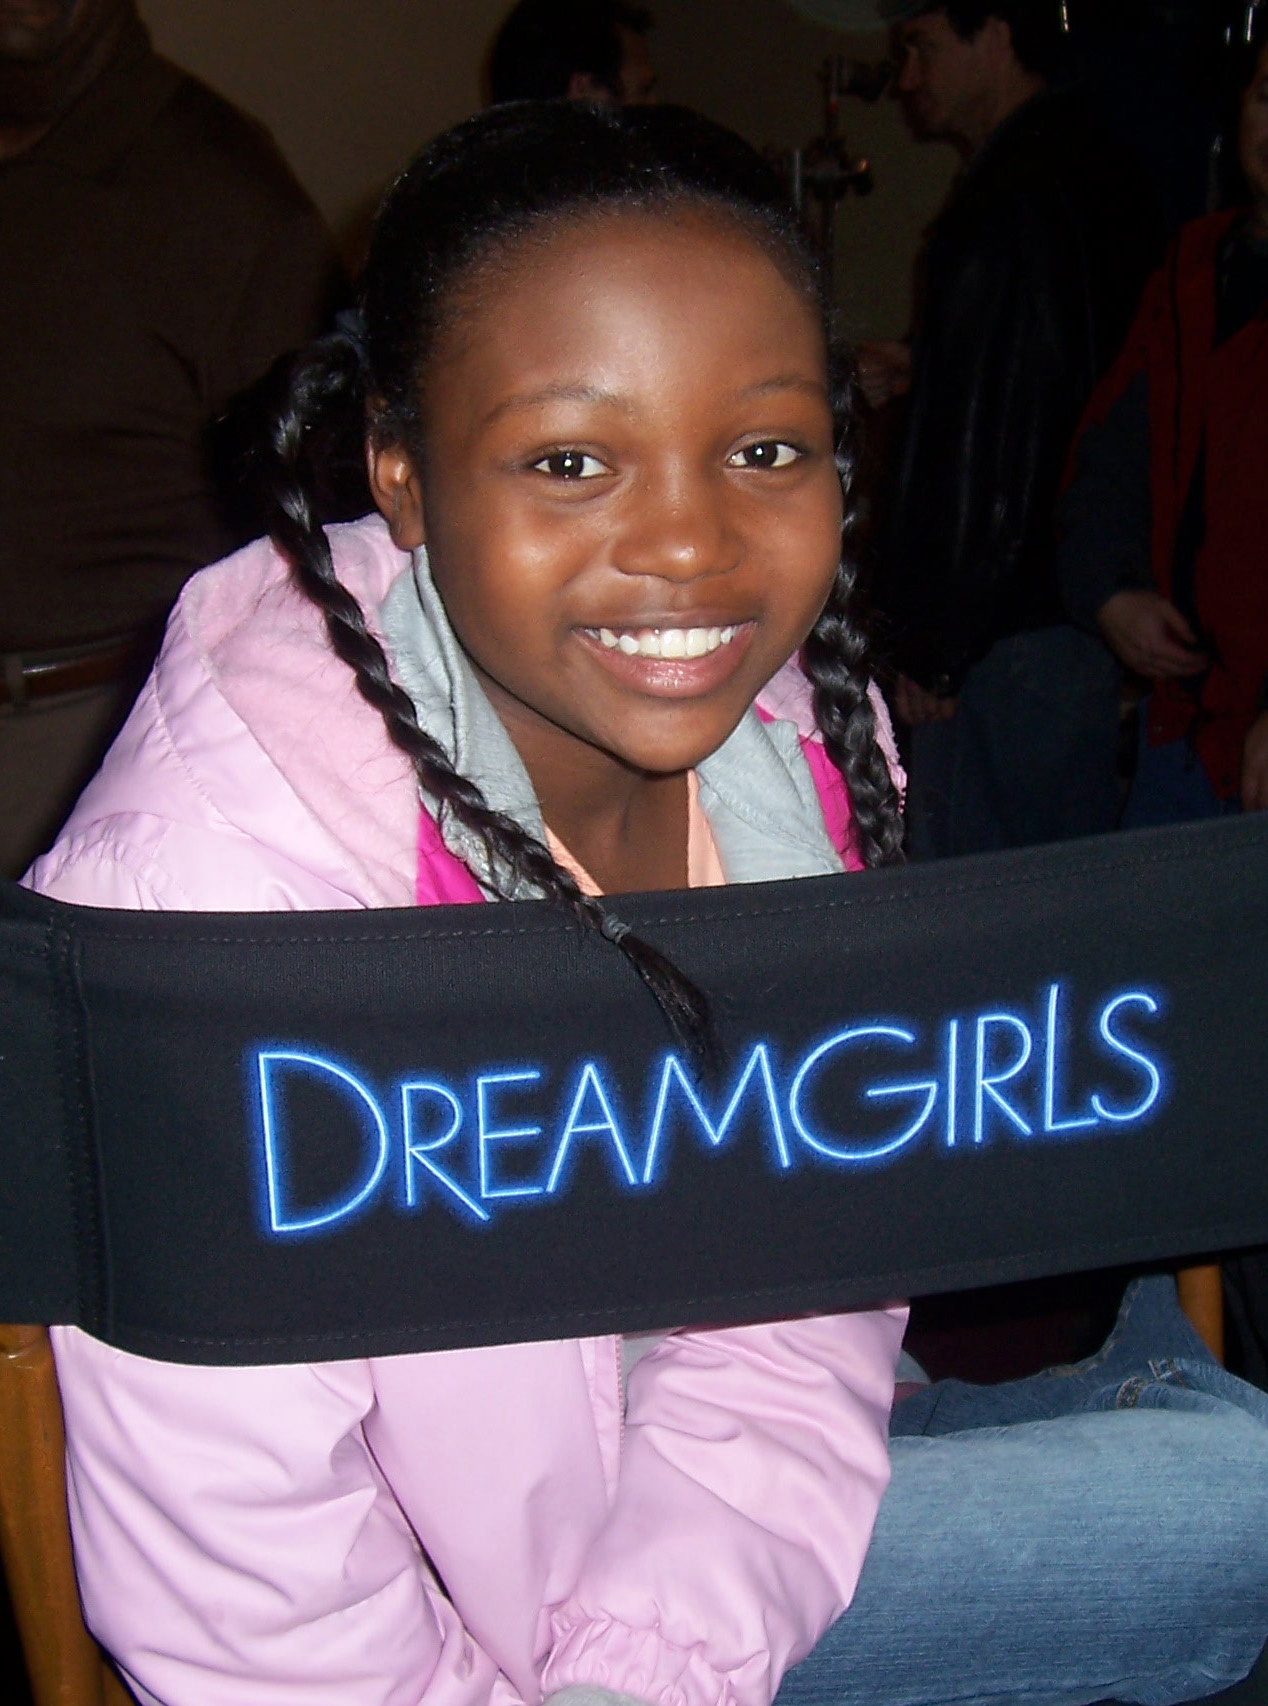 Dreamgirls_Magic